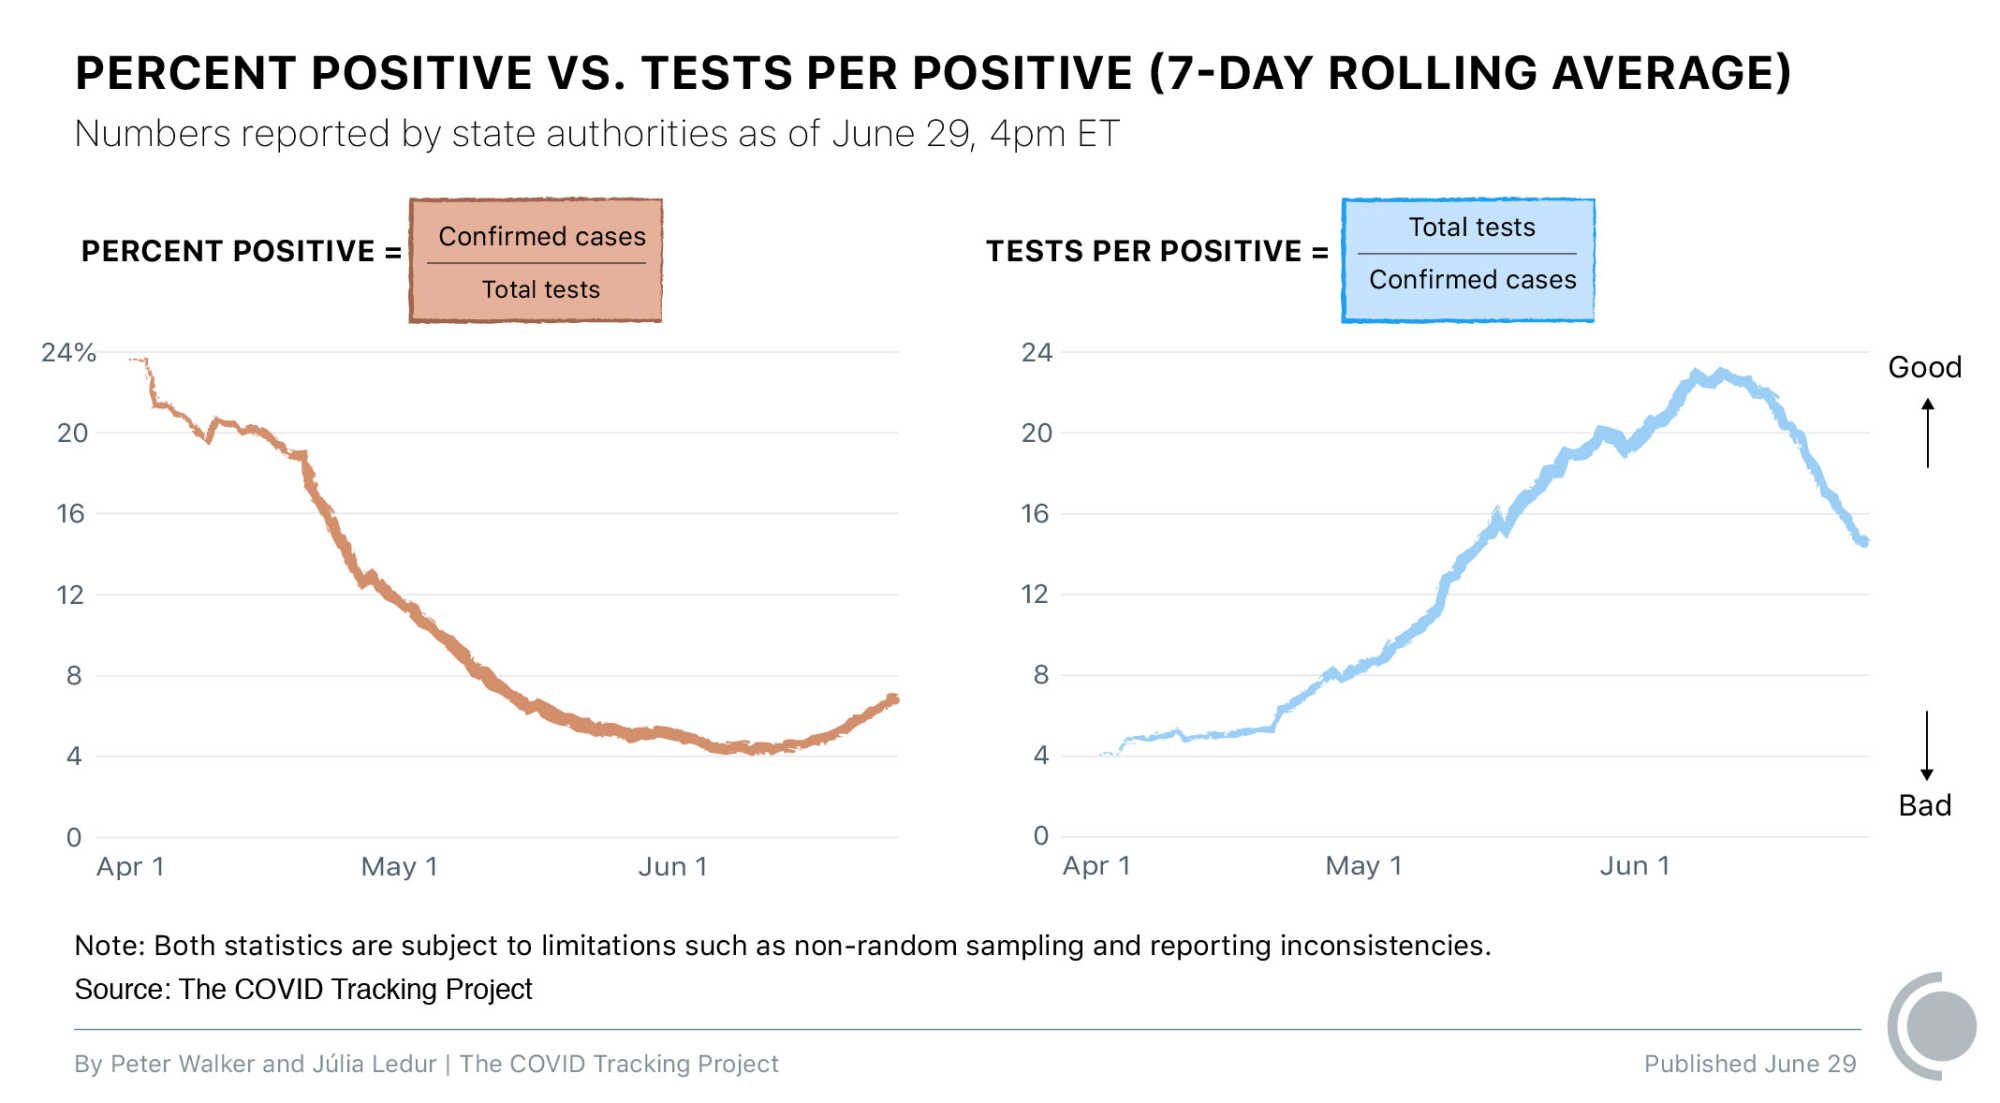 Charts showing a falling and then rising percent positive curve and a rising and then falling tests per positive curve